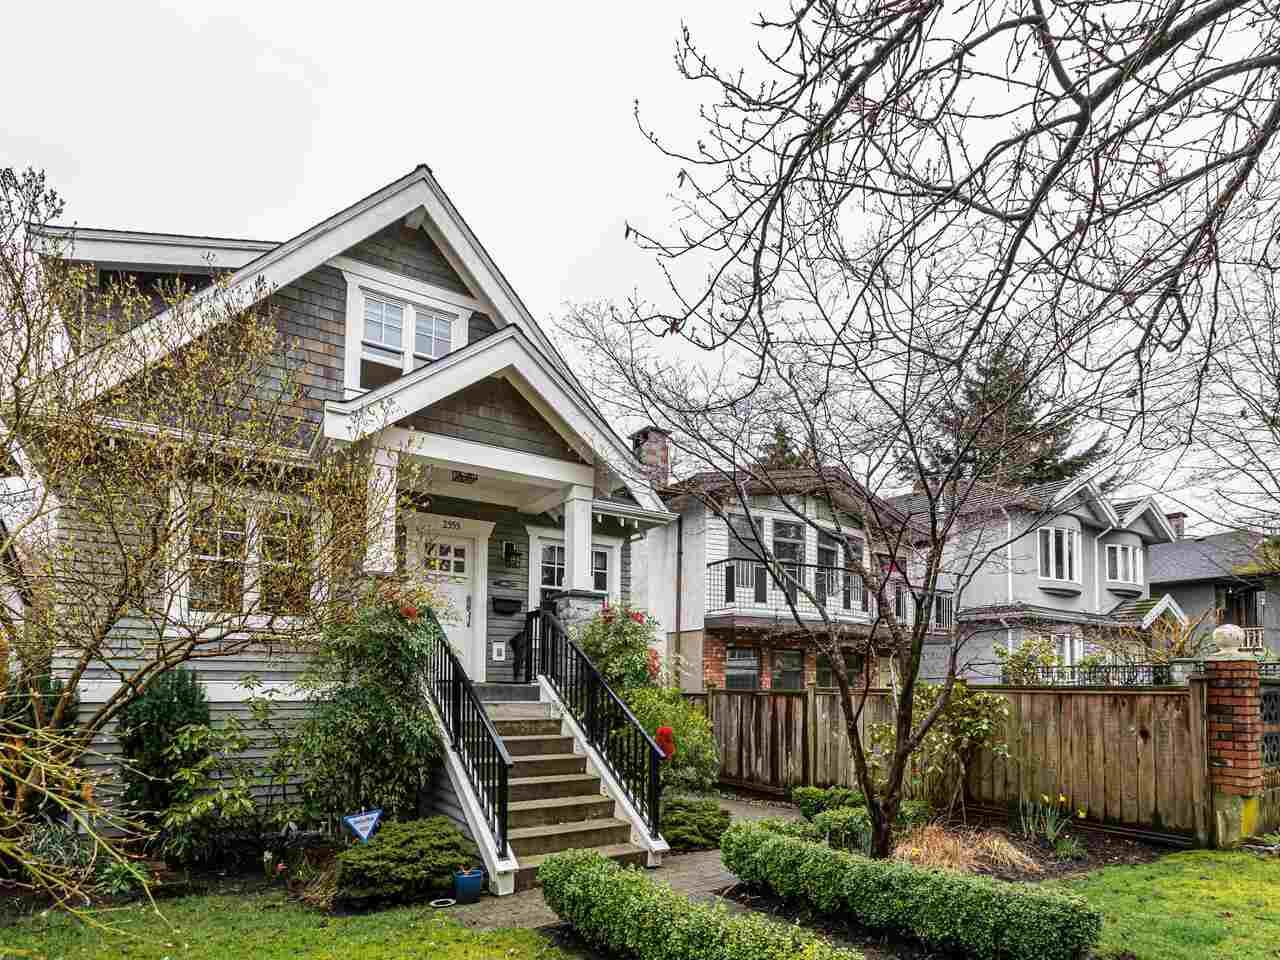 Main Photo: 2555 OXFORD Street in Vancouver: Hastings Sunrise House for sale (Vancouver East)  : MLS®# R2556739